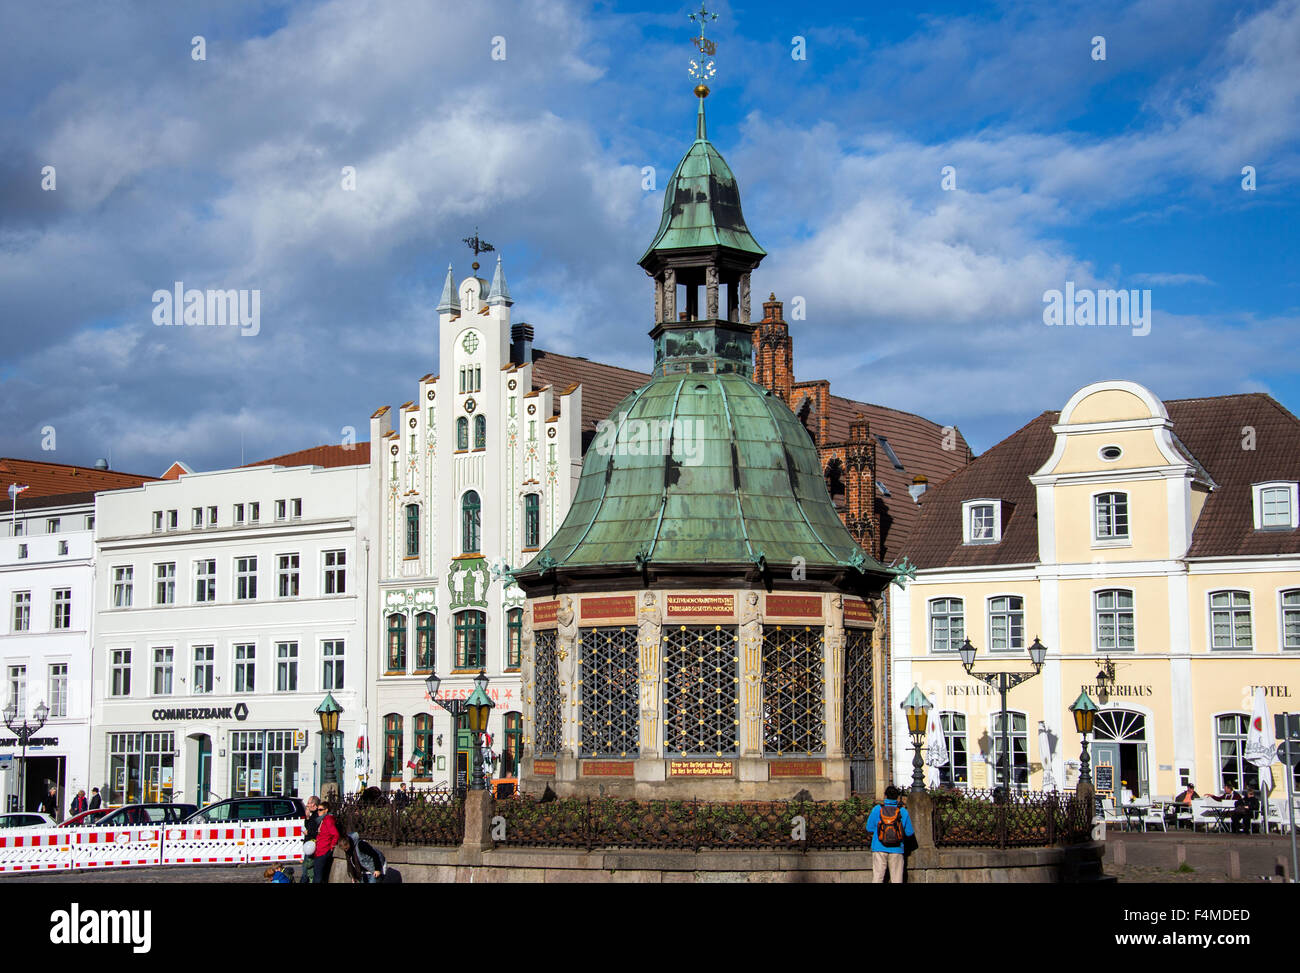 The Wasserkunst fountain pictured in front of historical gabled houses on the market square located in the historic - Stock Image